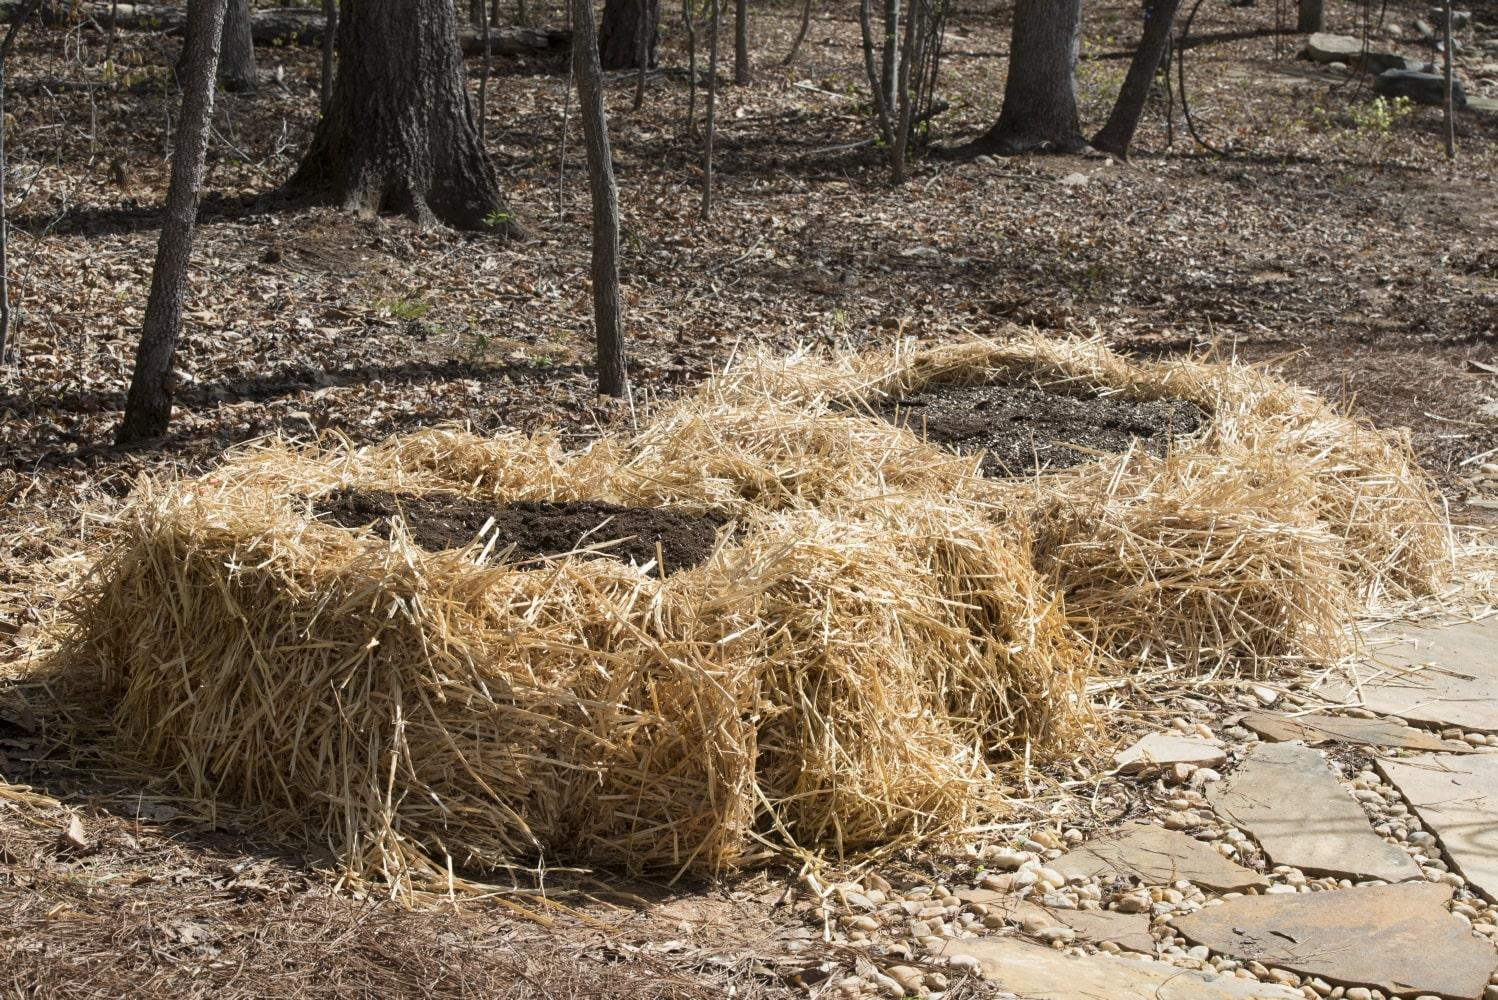 Straw bales form the frame of two circular raised bed gardens, each filled with soil and ready for plants.